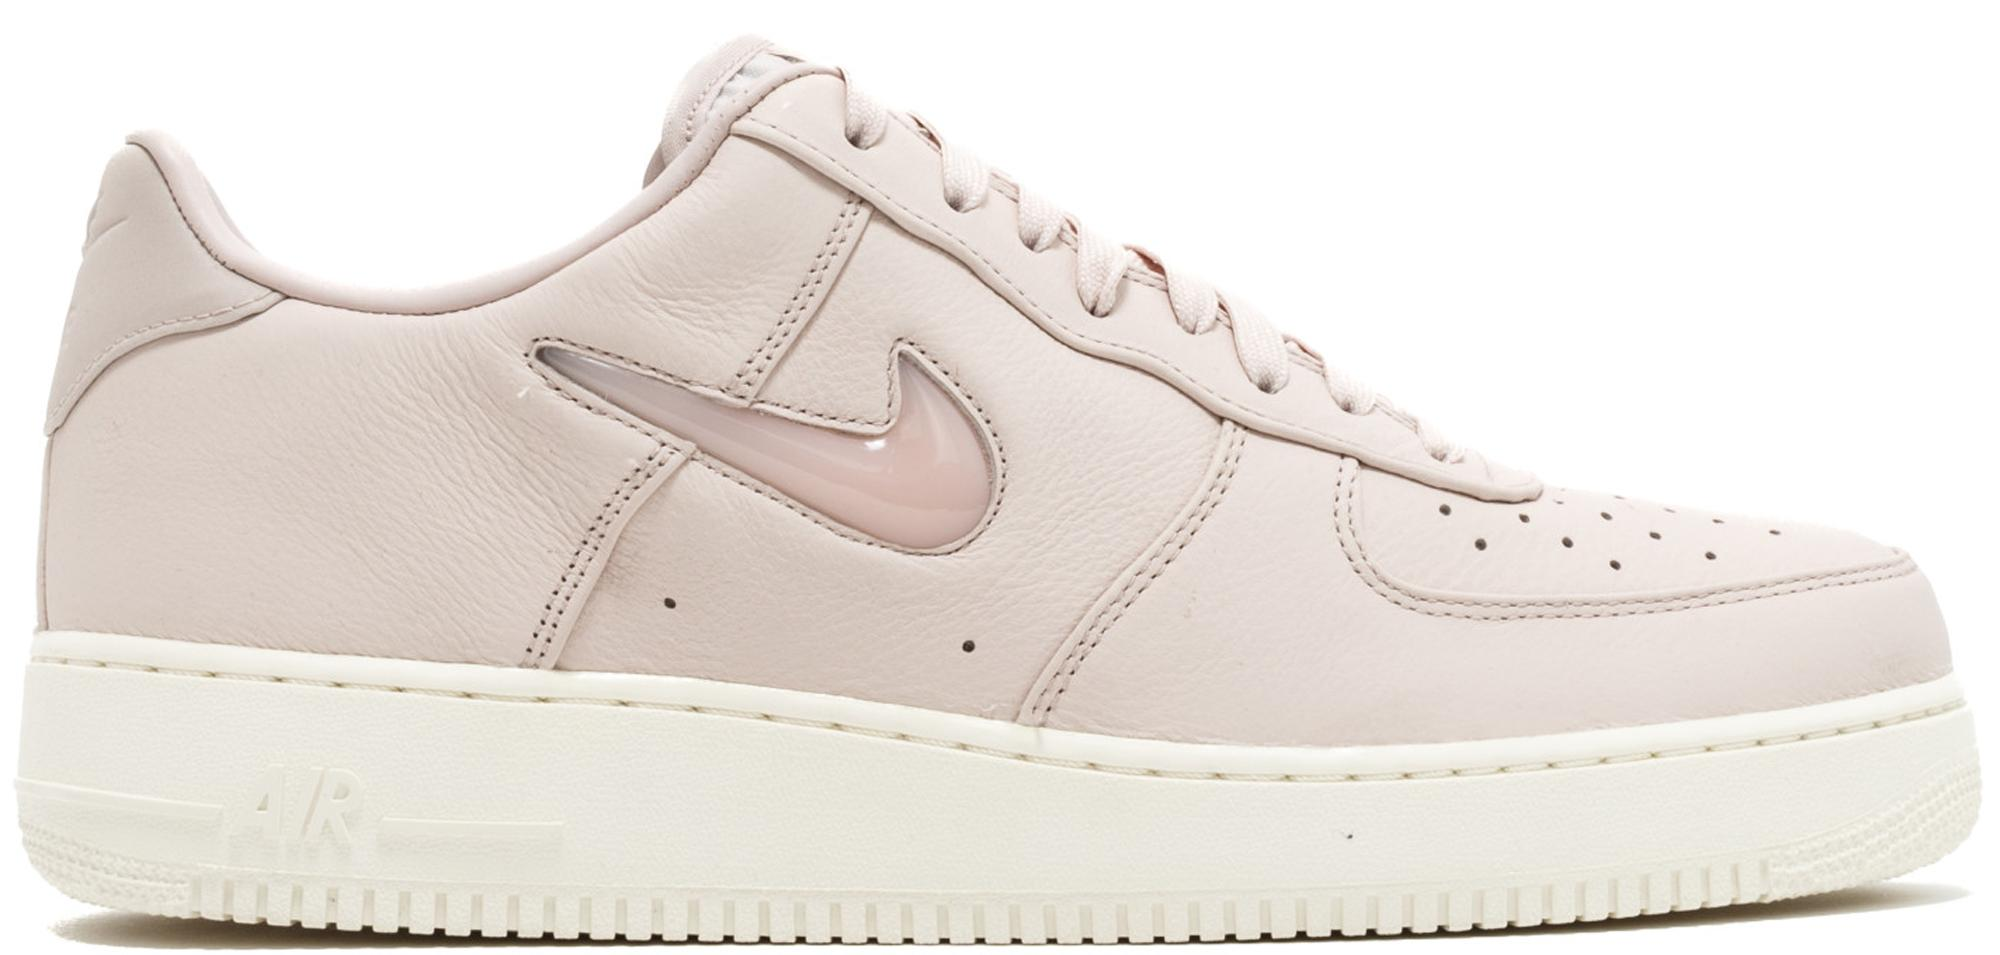 Nike Air Force 1 Low Jewel Silt Red for Men - Lyst